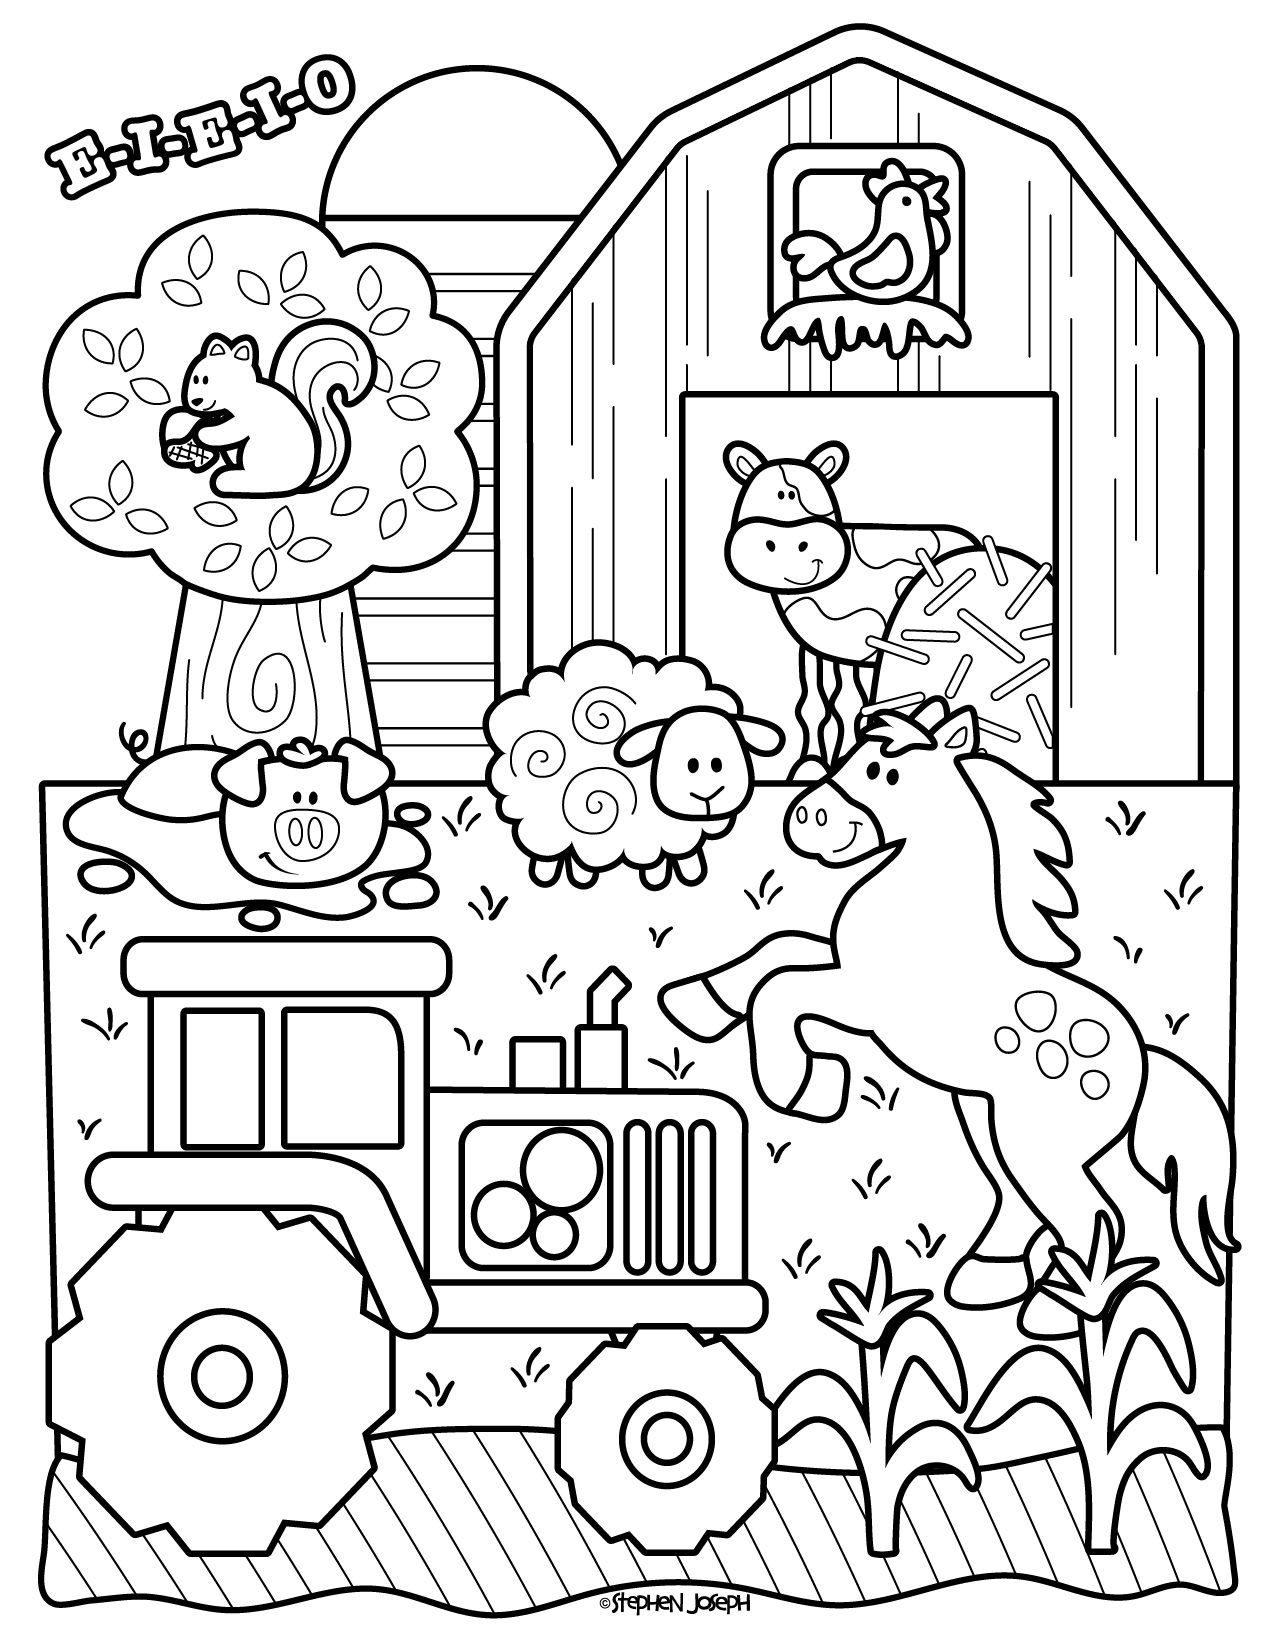 Pin On Free Coloring Pages By Stephen Joseph Gifts